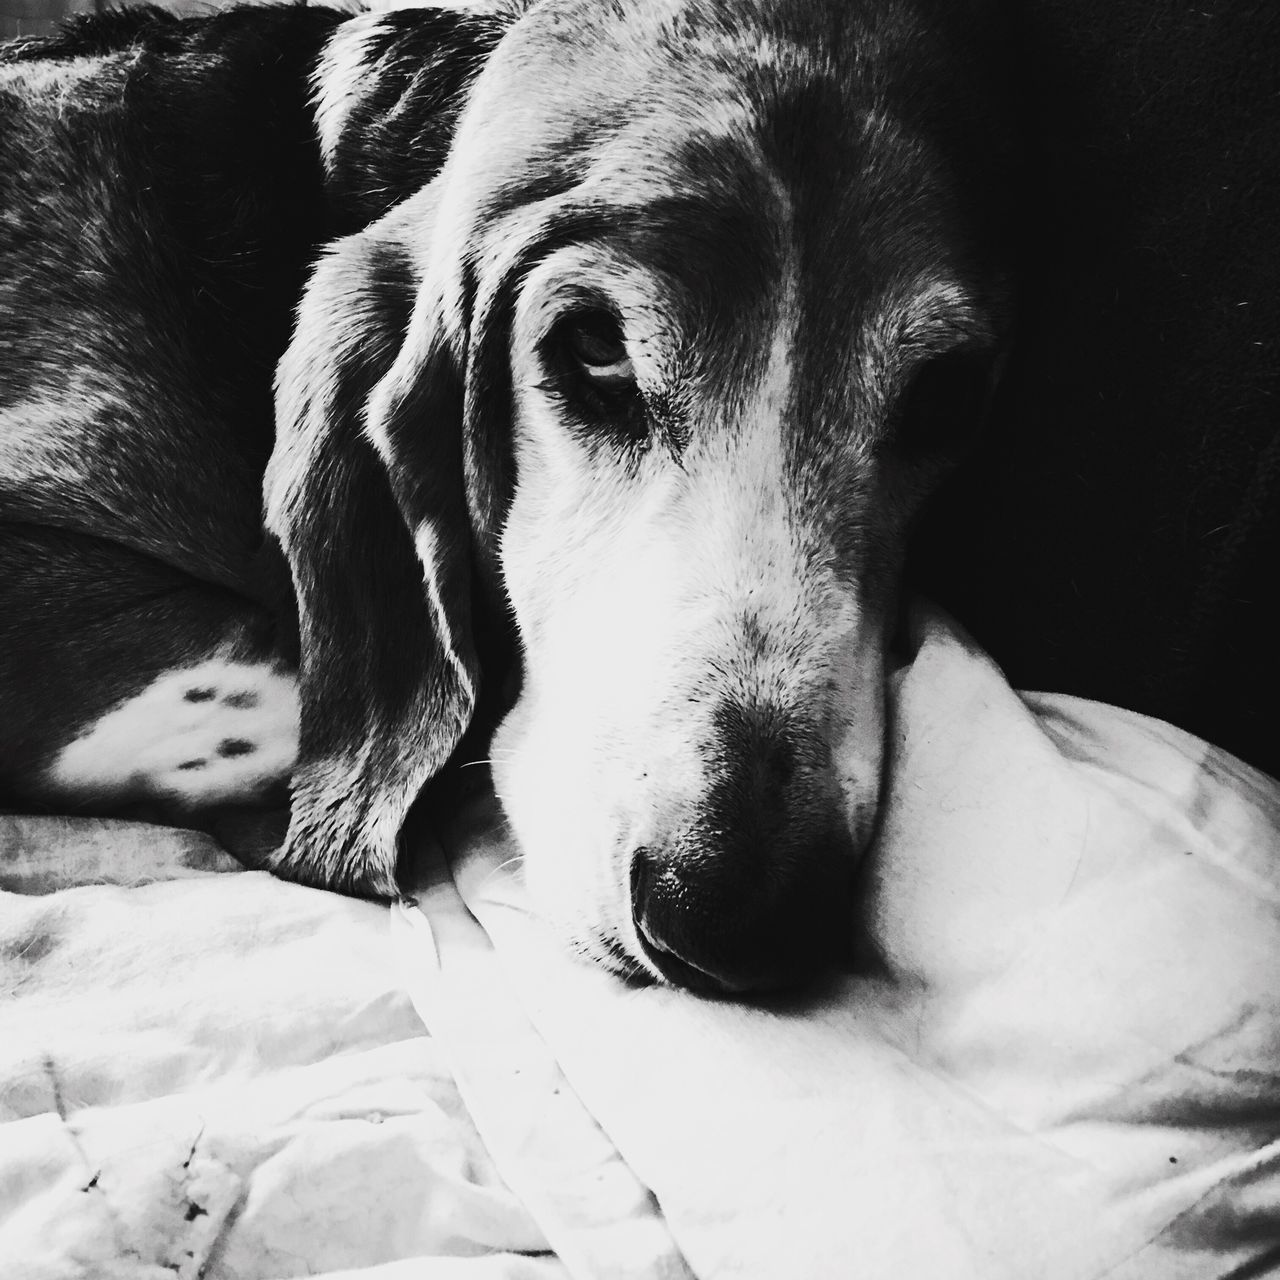 I just woke up Cooper Check This Out That's Me Enjoying Life Relaxedand Happy Ilovebassethounds Bassetworld Bassetmoments Bassetphotography Iphonephotography MySweetheart Posing For The Camera Blackandwhite Photography